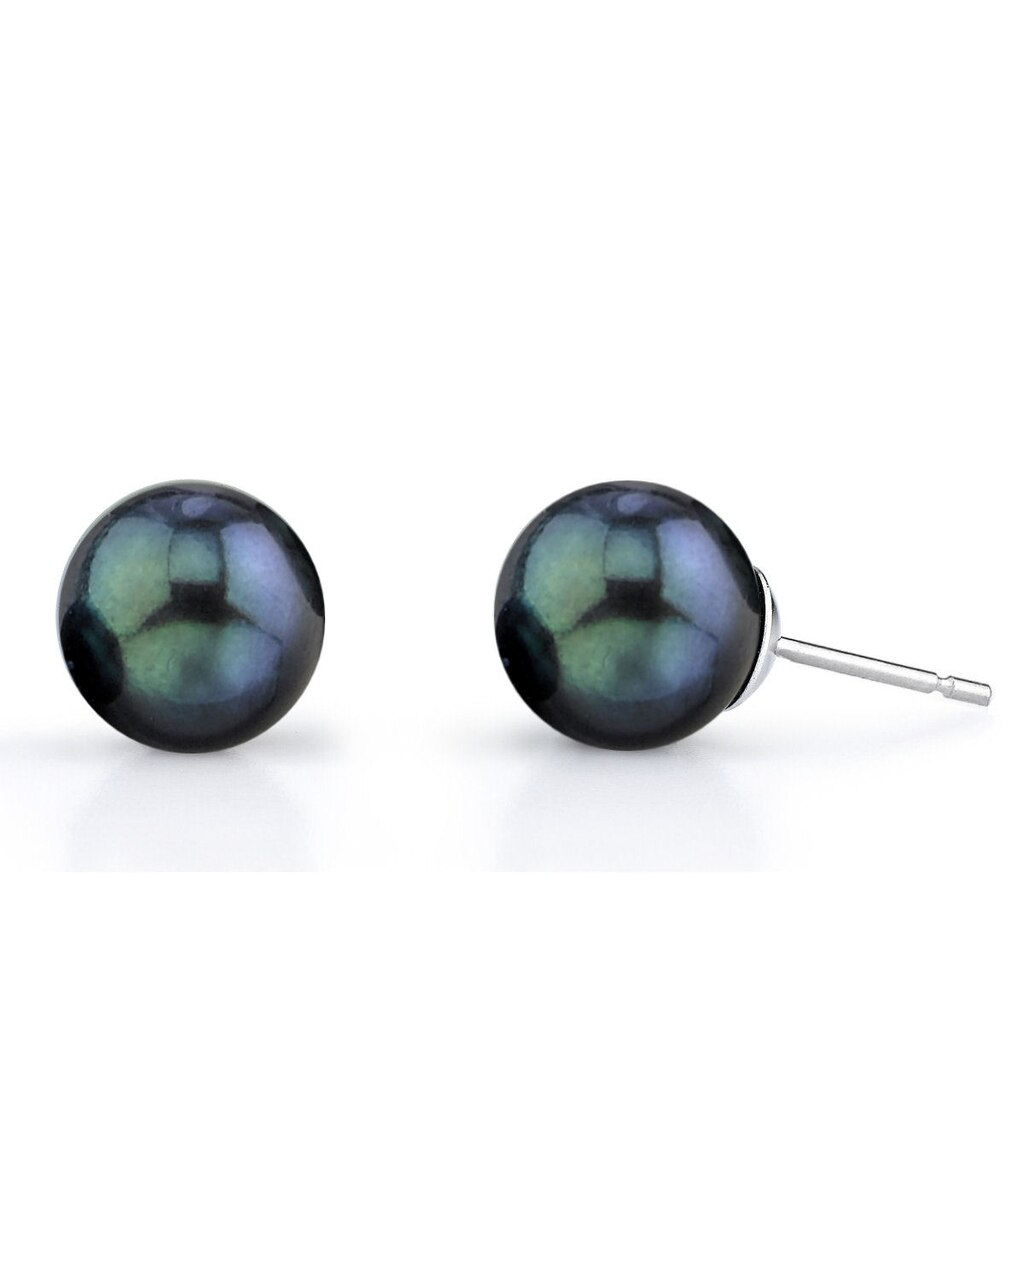 Classic gold stud earrings feature two 7.5-8.0mm Japanese Akoya pearls, selected for their luminous luster